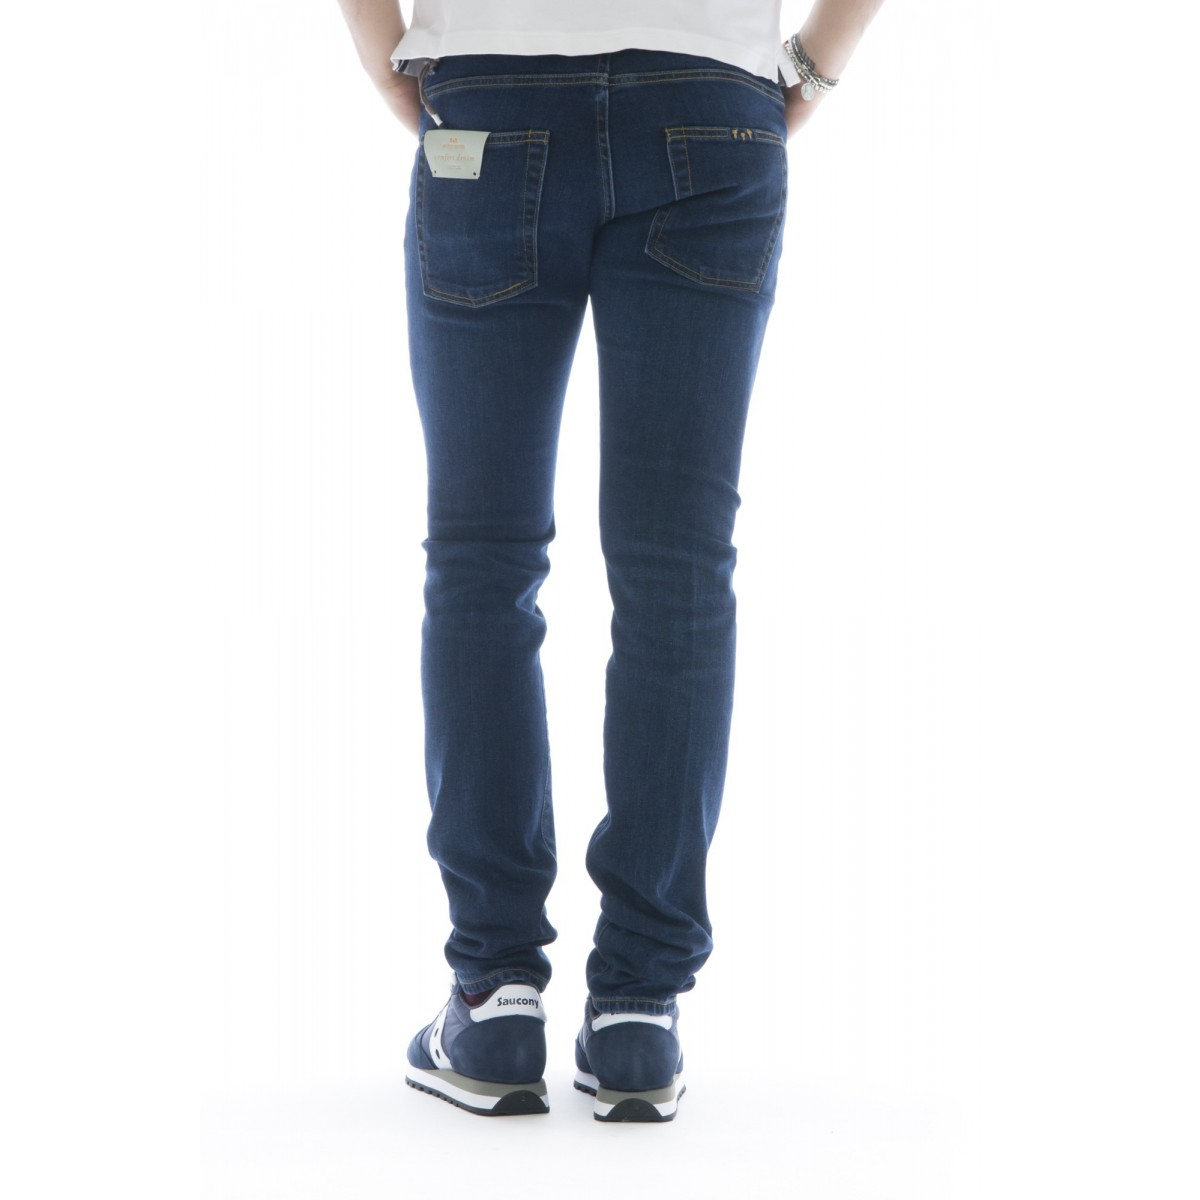 Jeans - Toto 744l363 jeans slim strech curabo giapponese